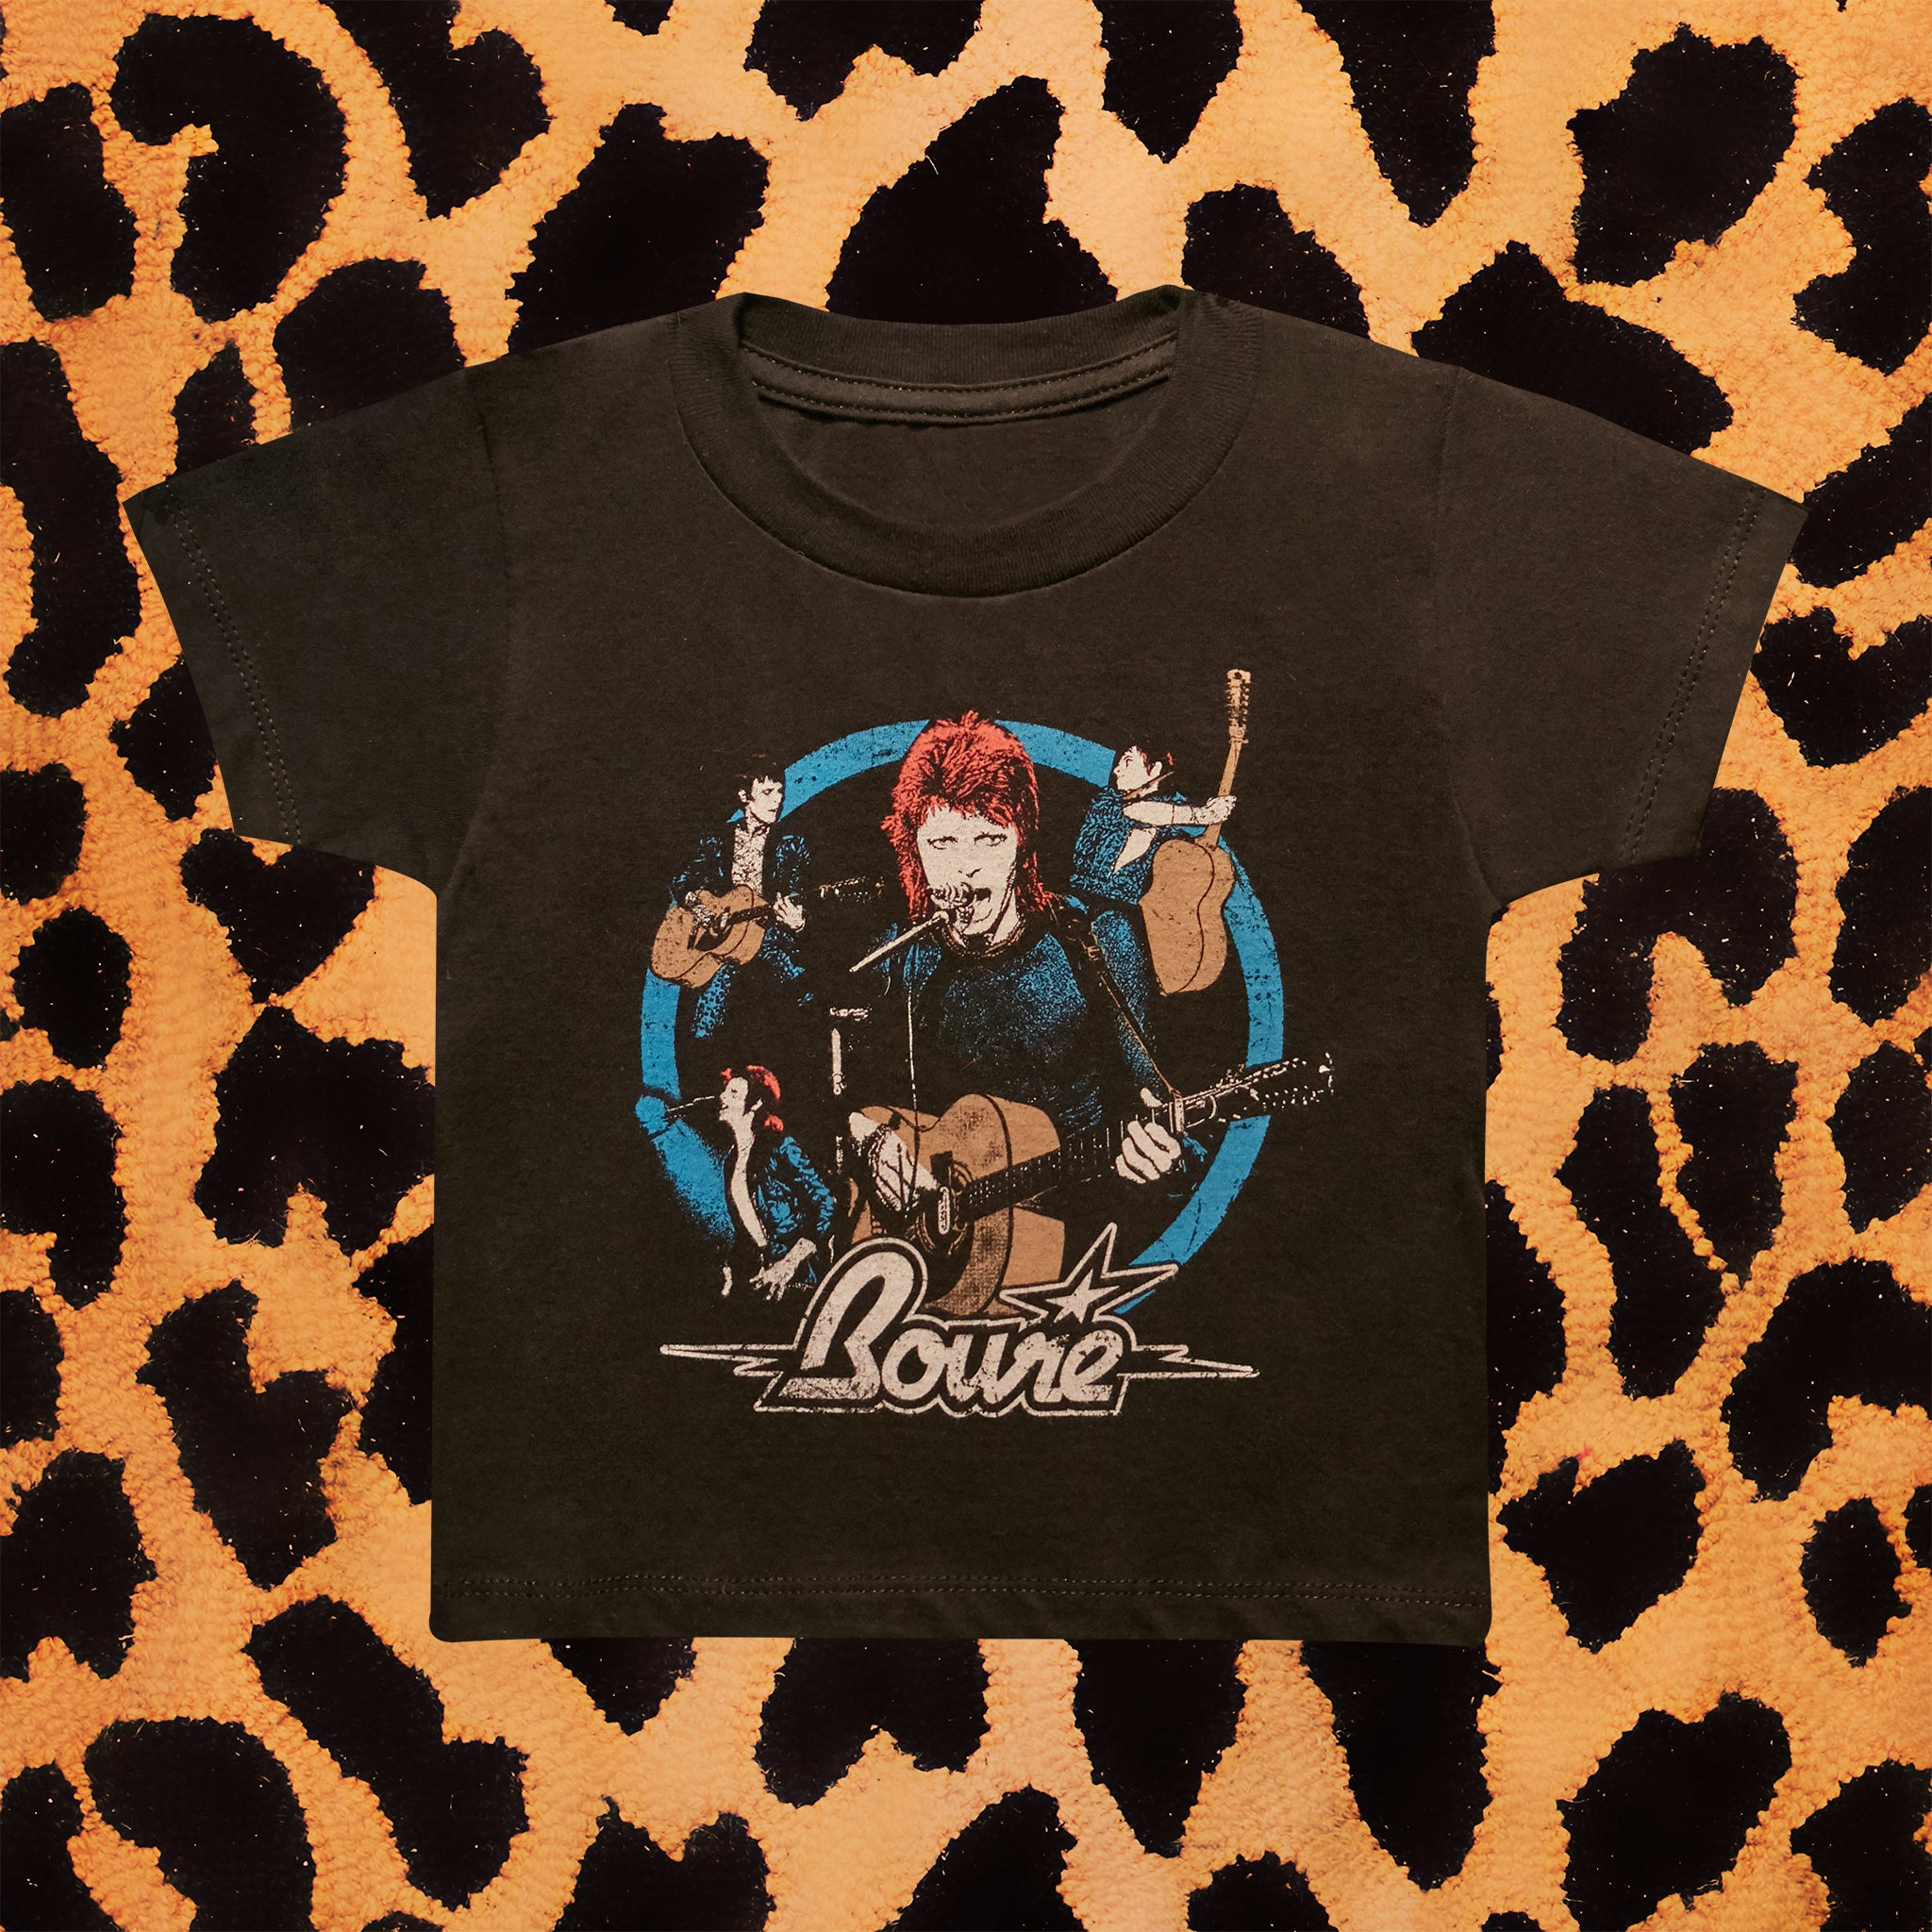 DAVID BOWIE 'COLLAGE' KIDS T-SHIRT